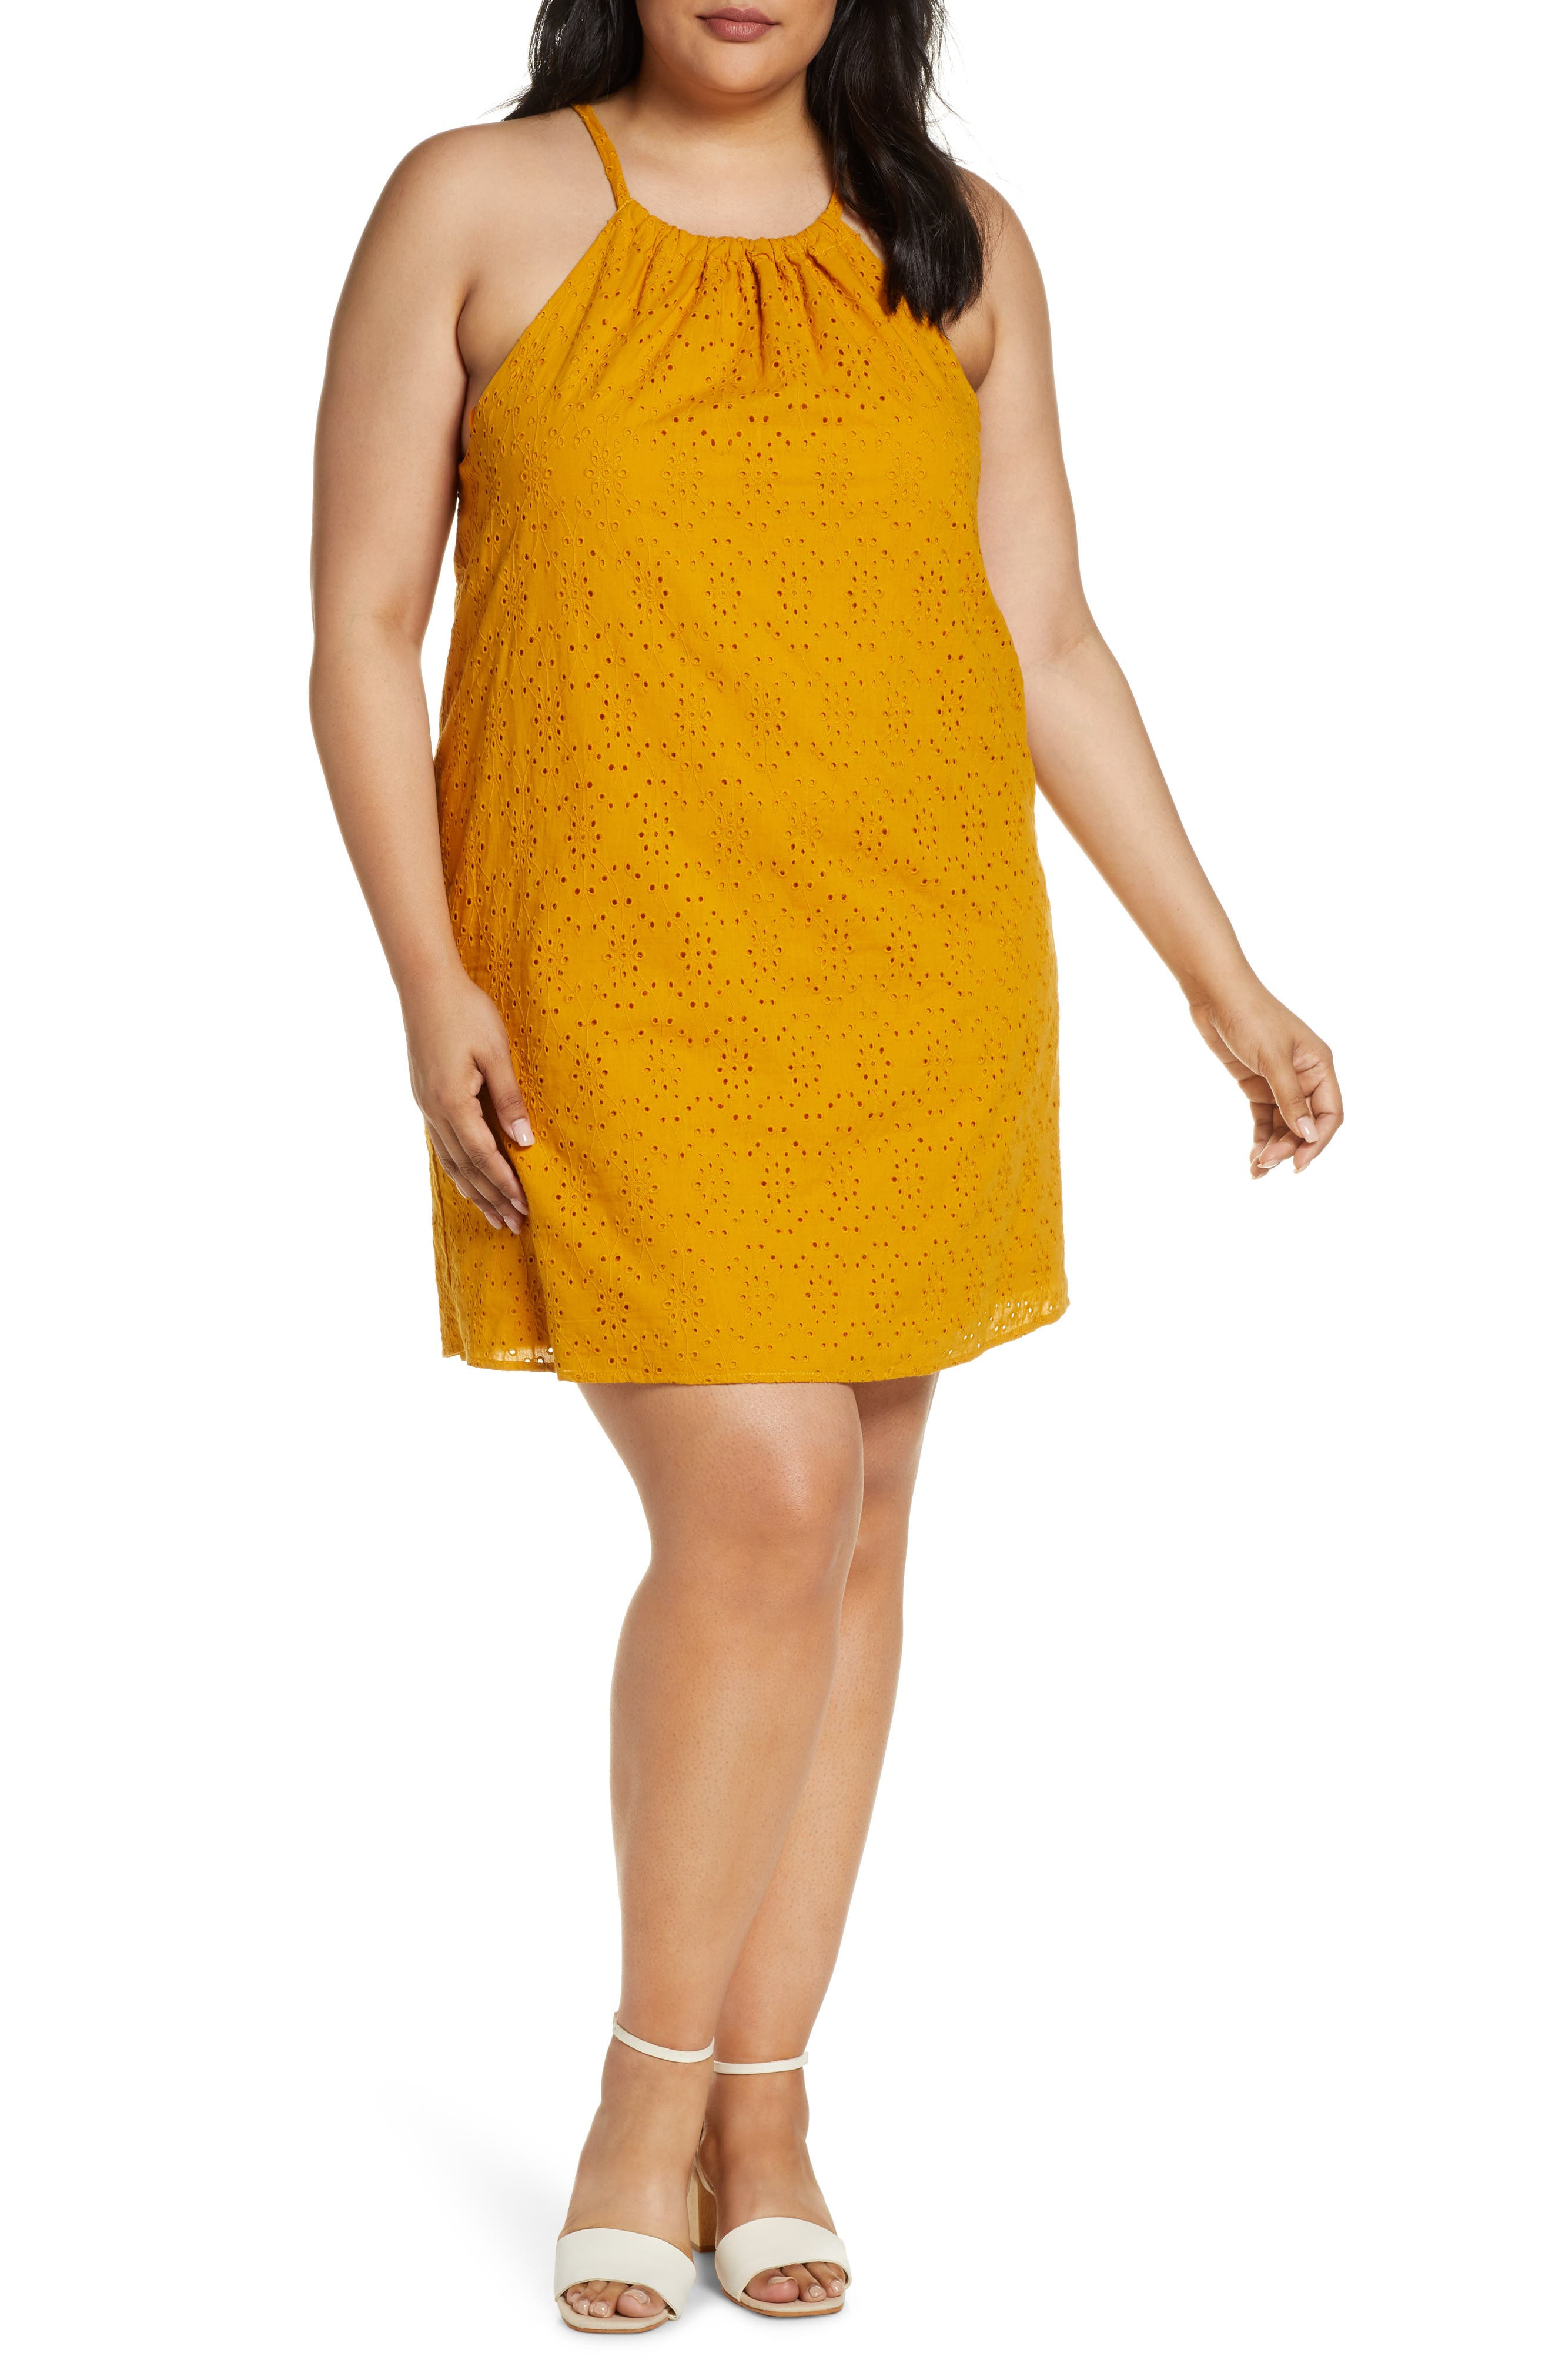 Plus Size Gibson X Hot Summer Nights Two Peas Eyelet Halter Summer Dress, Yellow (Plus Size) (Nordstrom Exclusive)